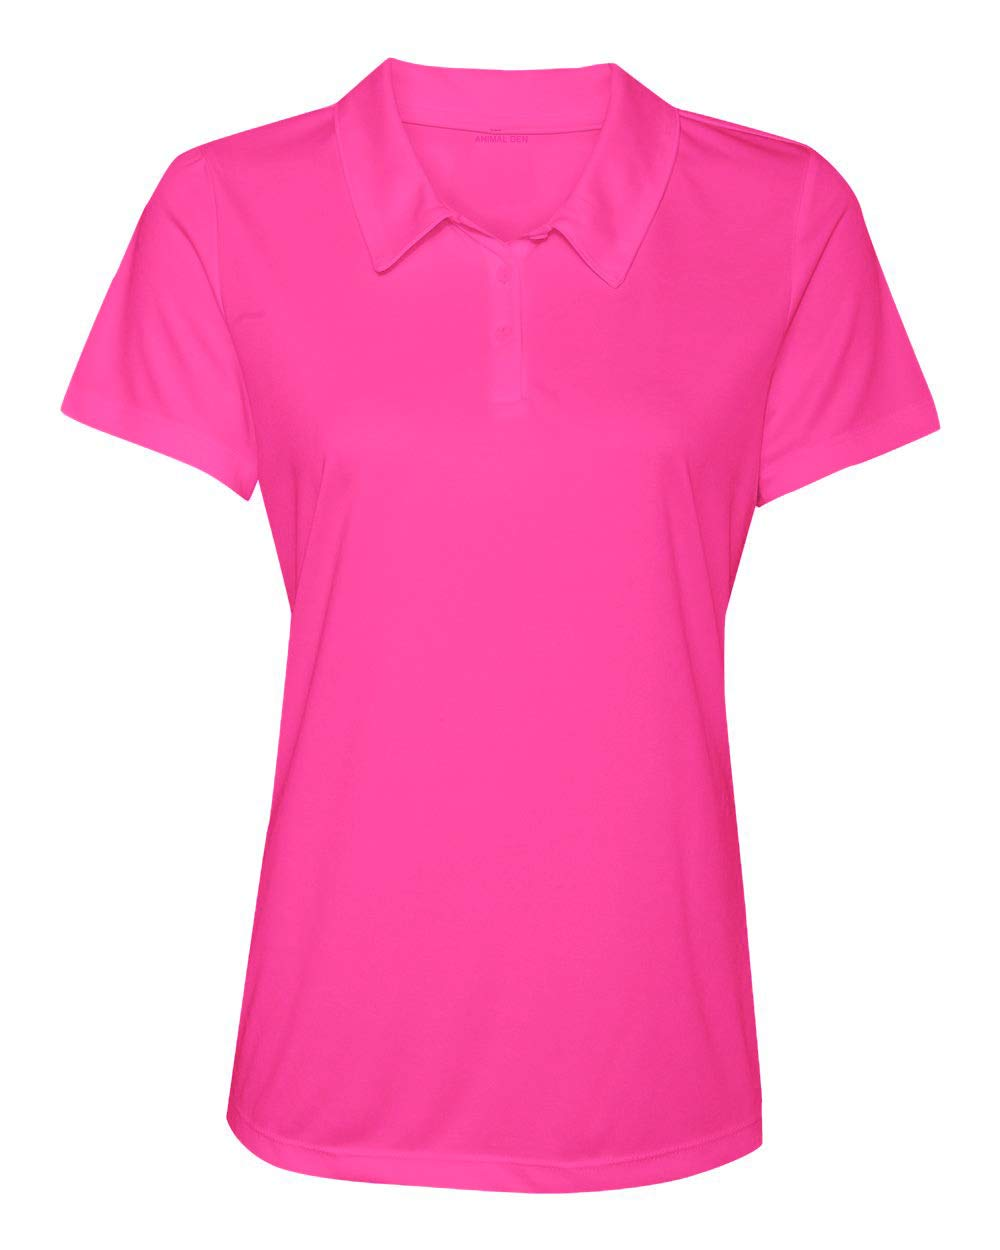 Women's Dry-Fit Golf Polo Shirts 3-Button Golf Polo's in 20 Colors XS-3XL Shirt Pink-XL by Animal Den